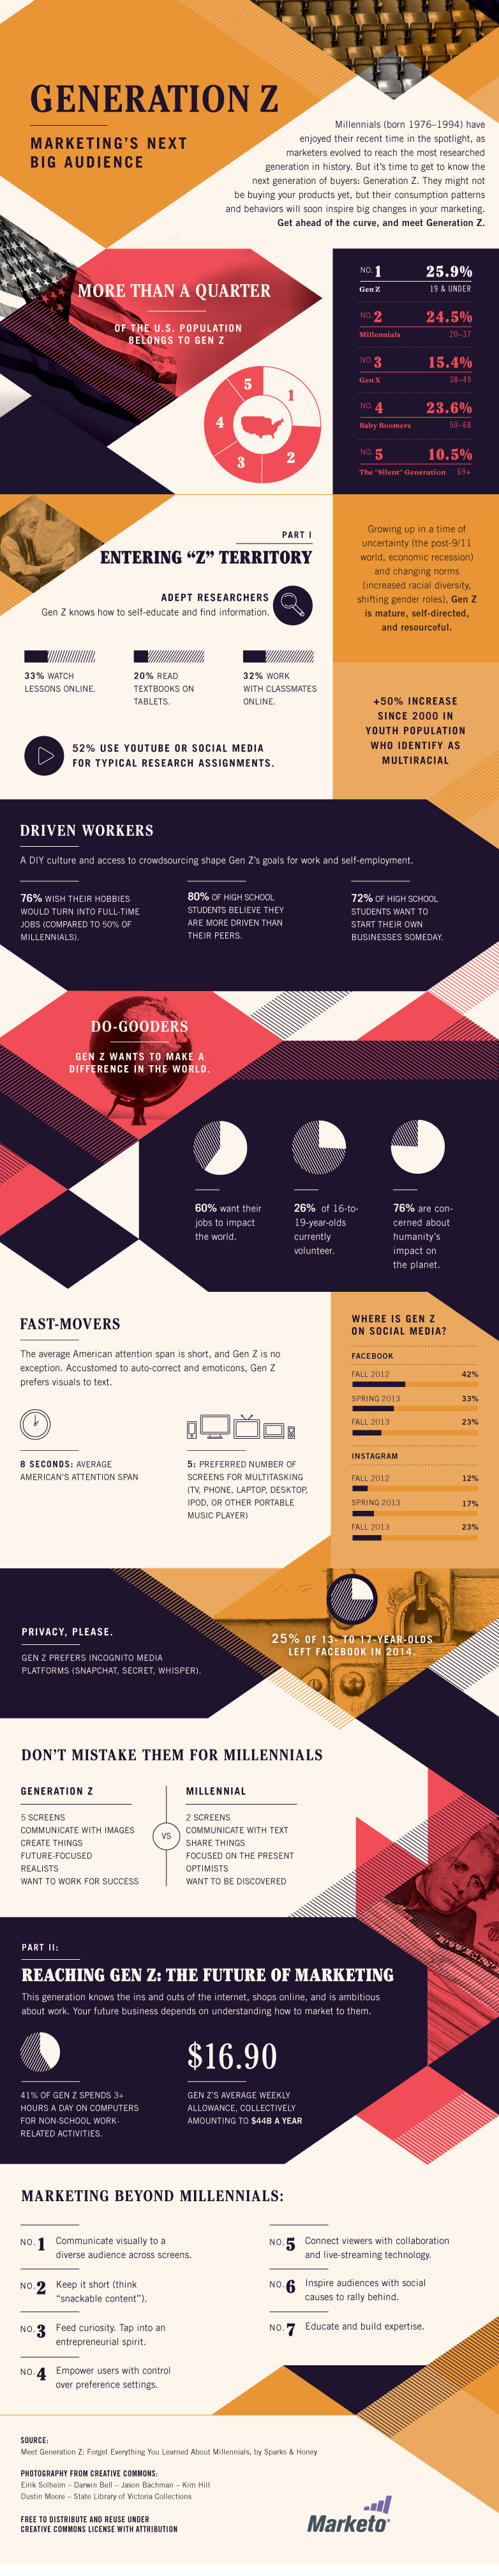 Generation Z: Marketing's Next Big Audience Infographic